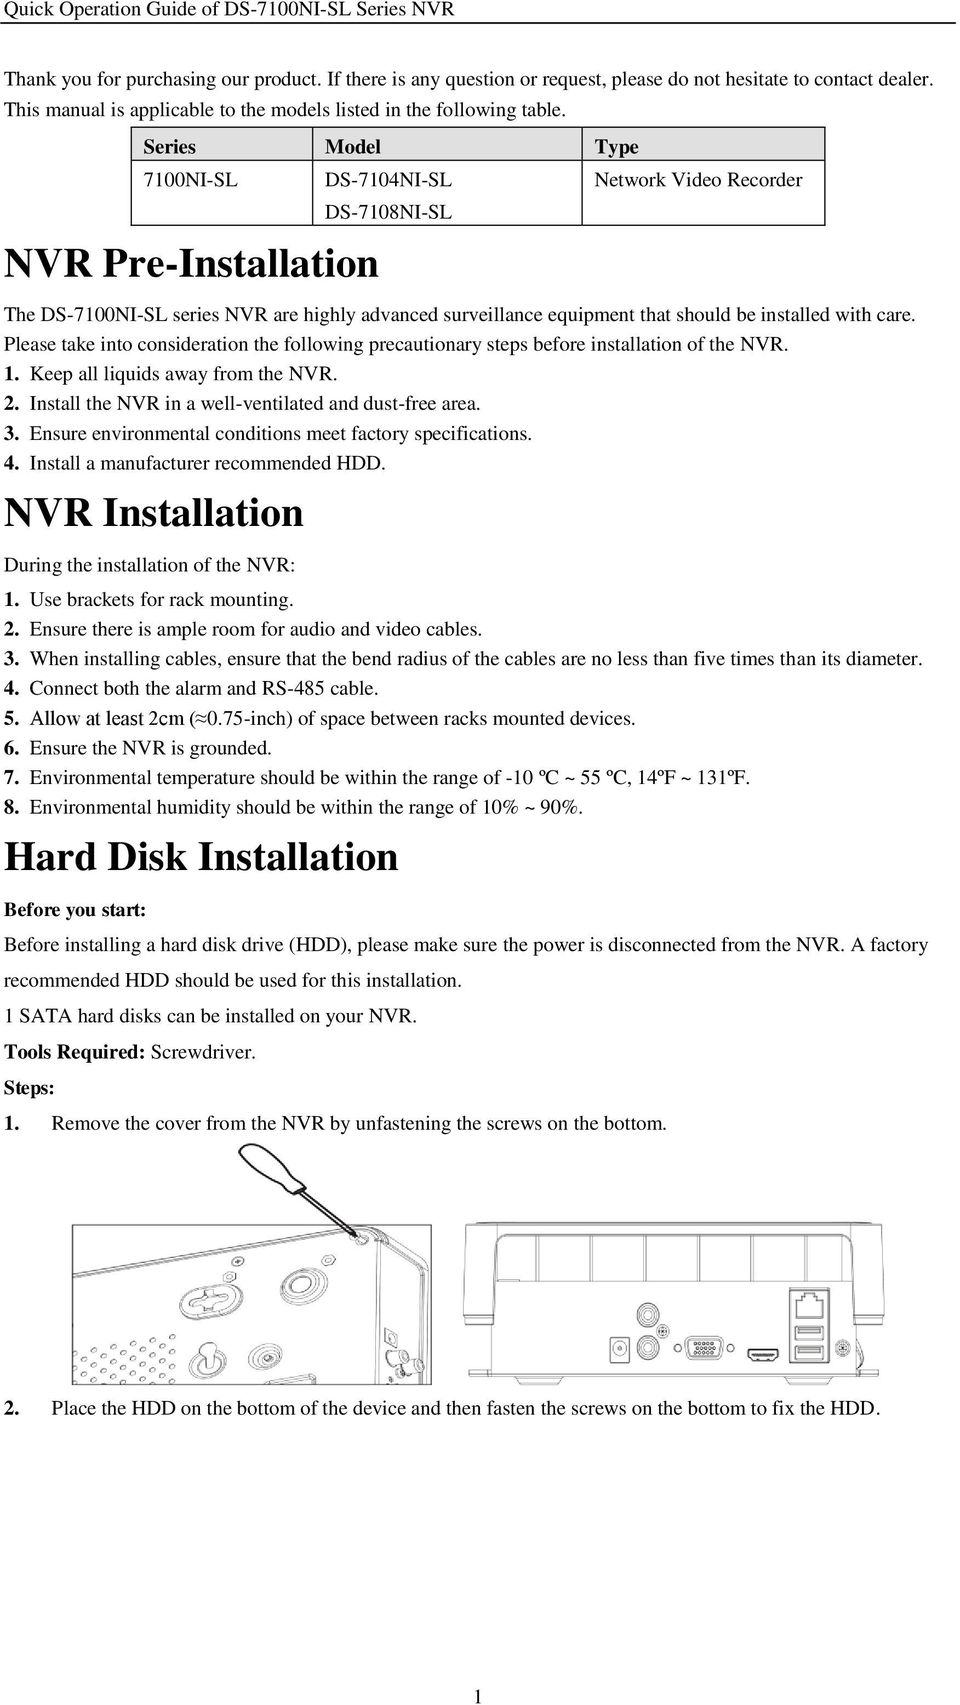 care. Please take into consideration the following precautionary steps before installation of the NVR. 1. Keep all liquids away from the NVR. 2.